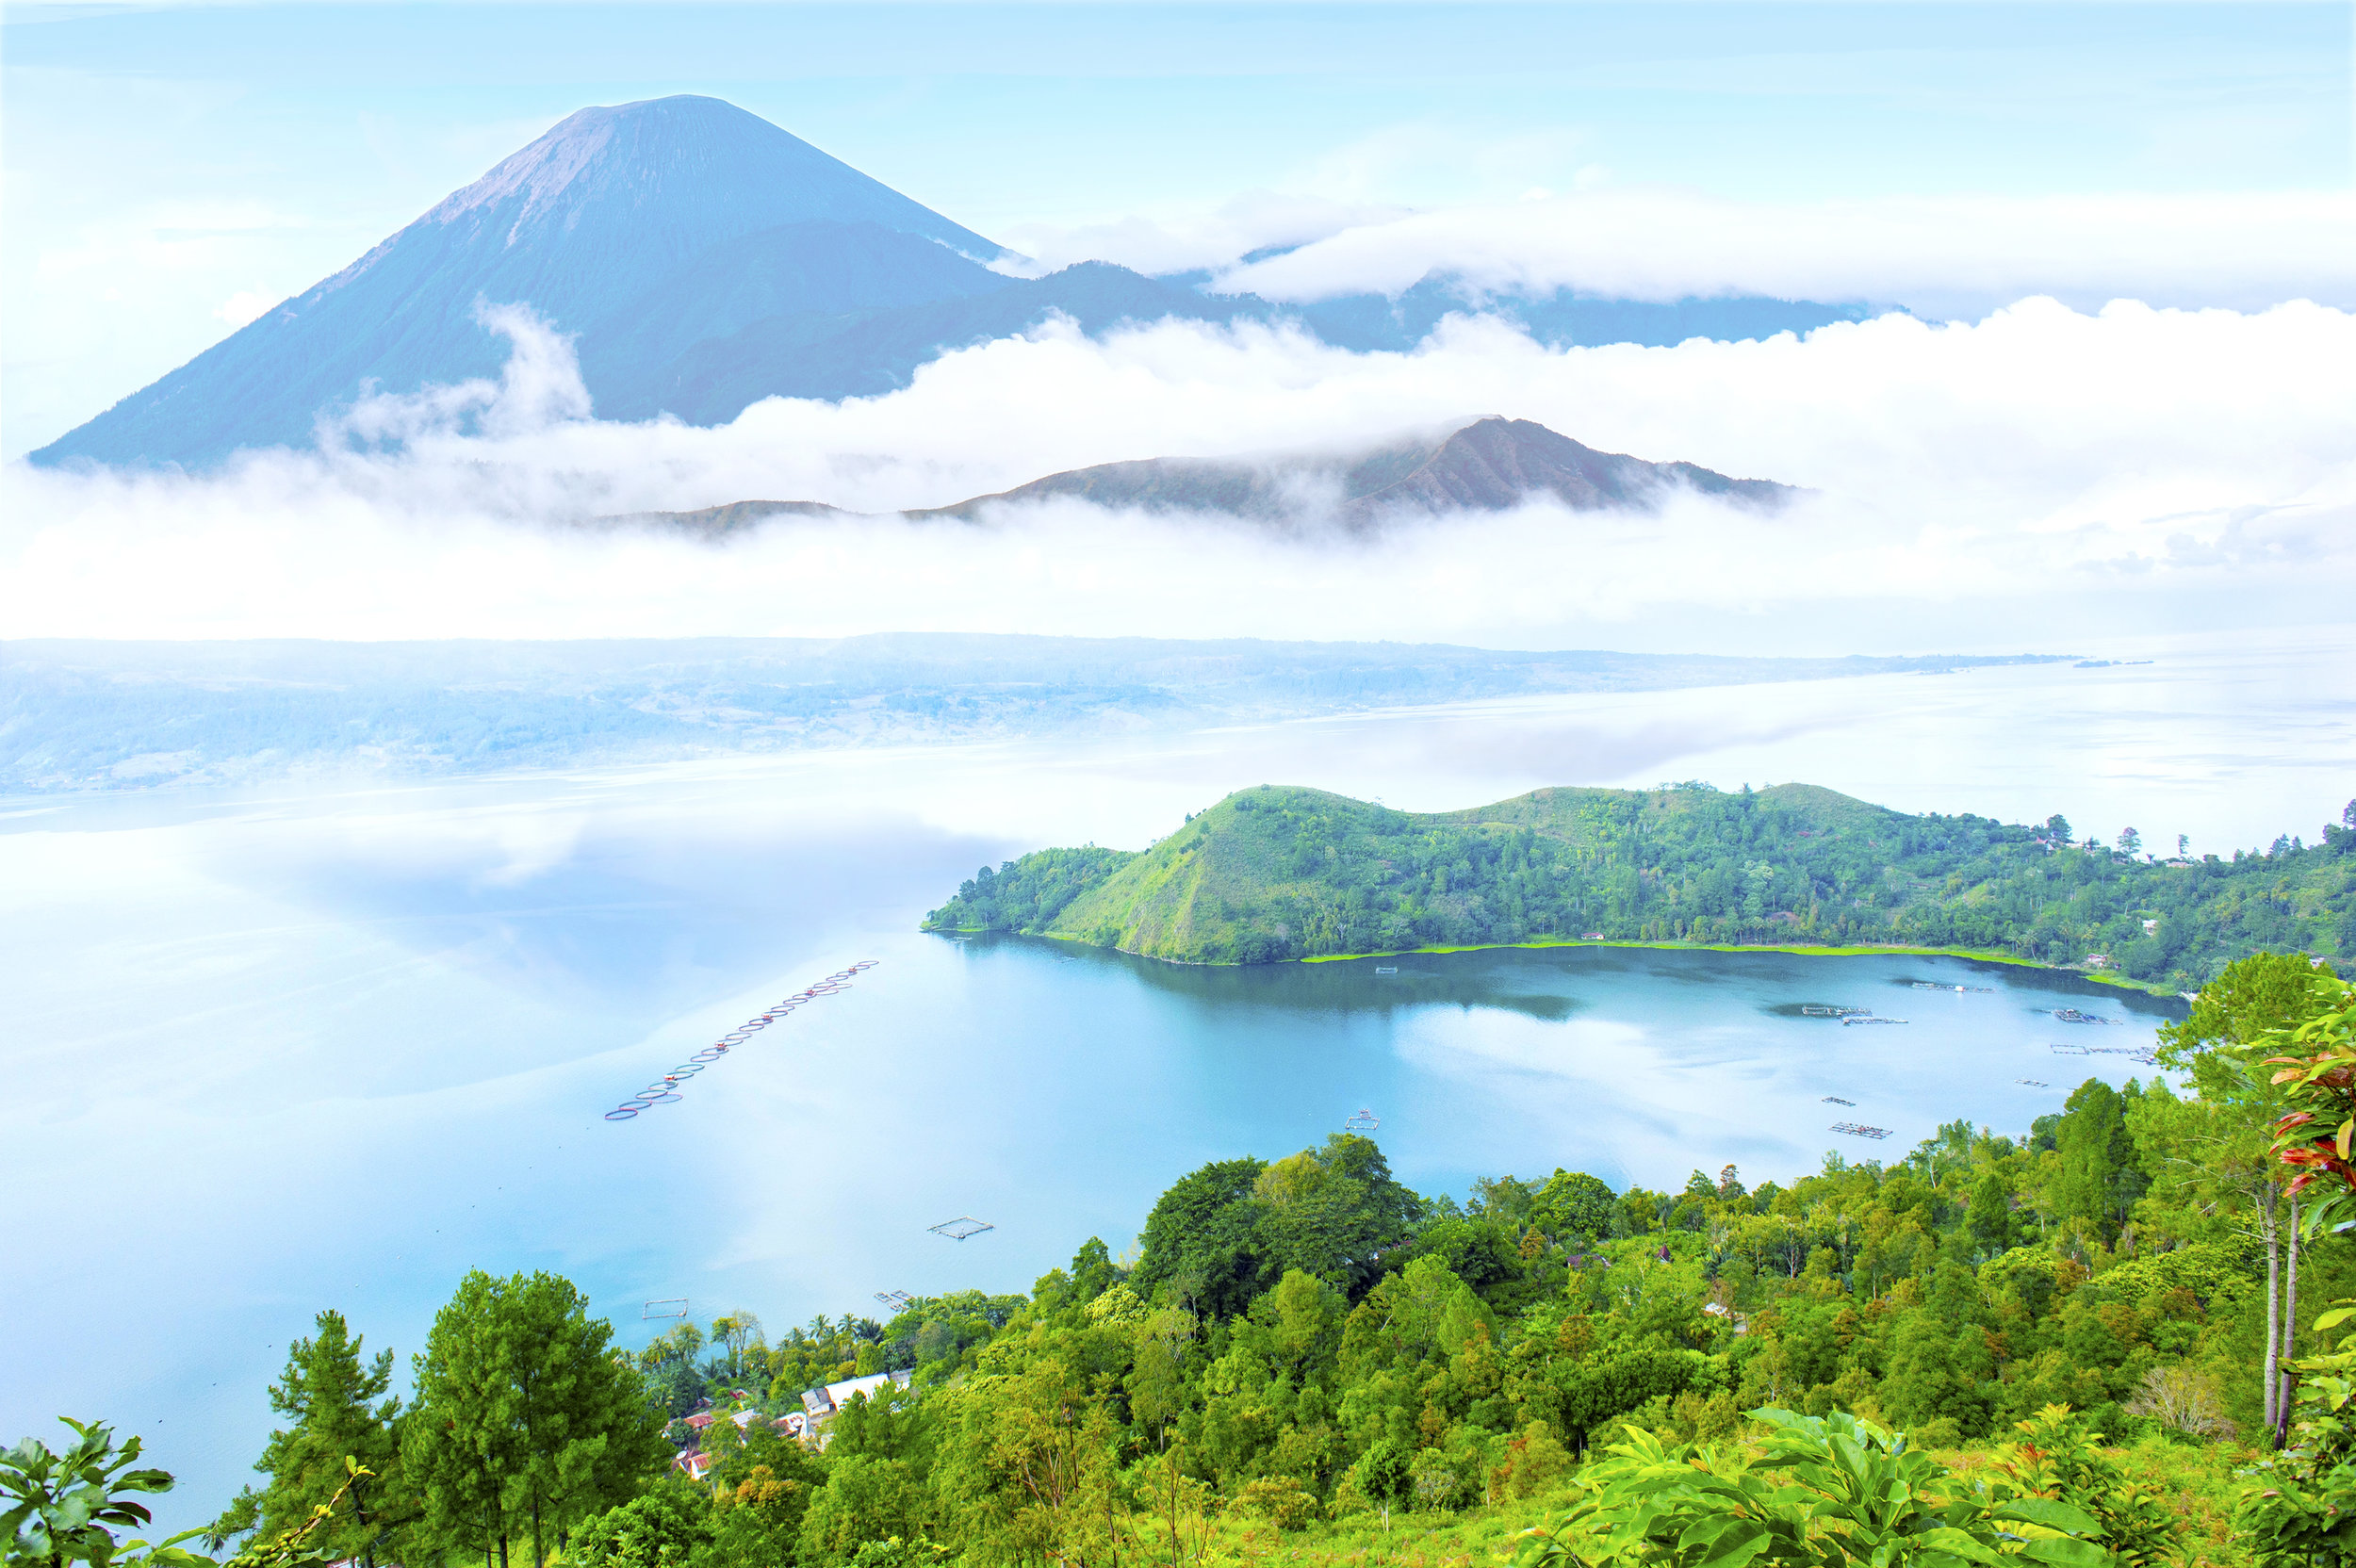 14.What an explosion! - The largest eruption of a volcano in the last 25 million years occurred about 70,000 years ago in Indonesia.The explosion was so large it is believed that most humans living at the time were killed. Lake Toba was left by the eruption and is the largest volcanic lake in the world.